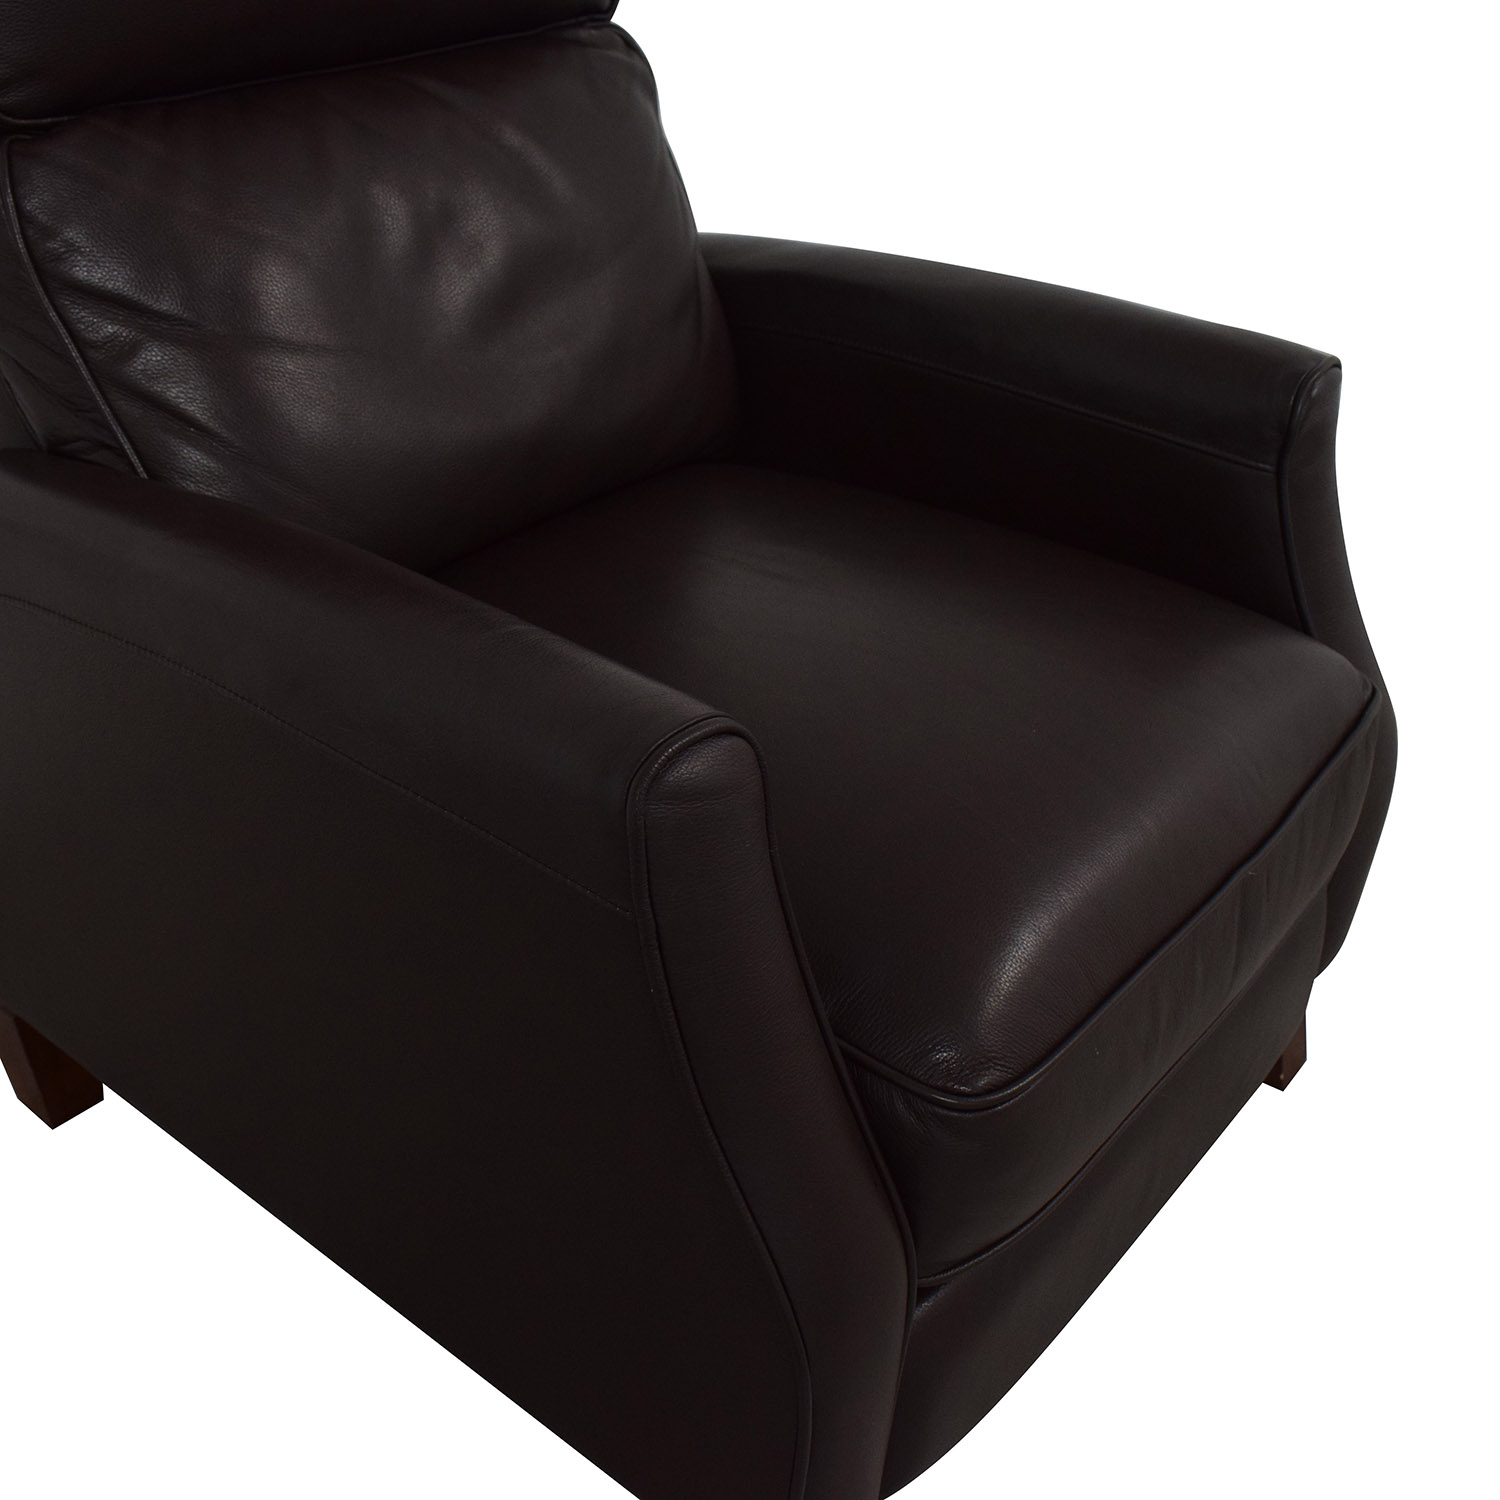 Macy's Macy's Leather Recliner discount